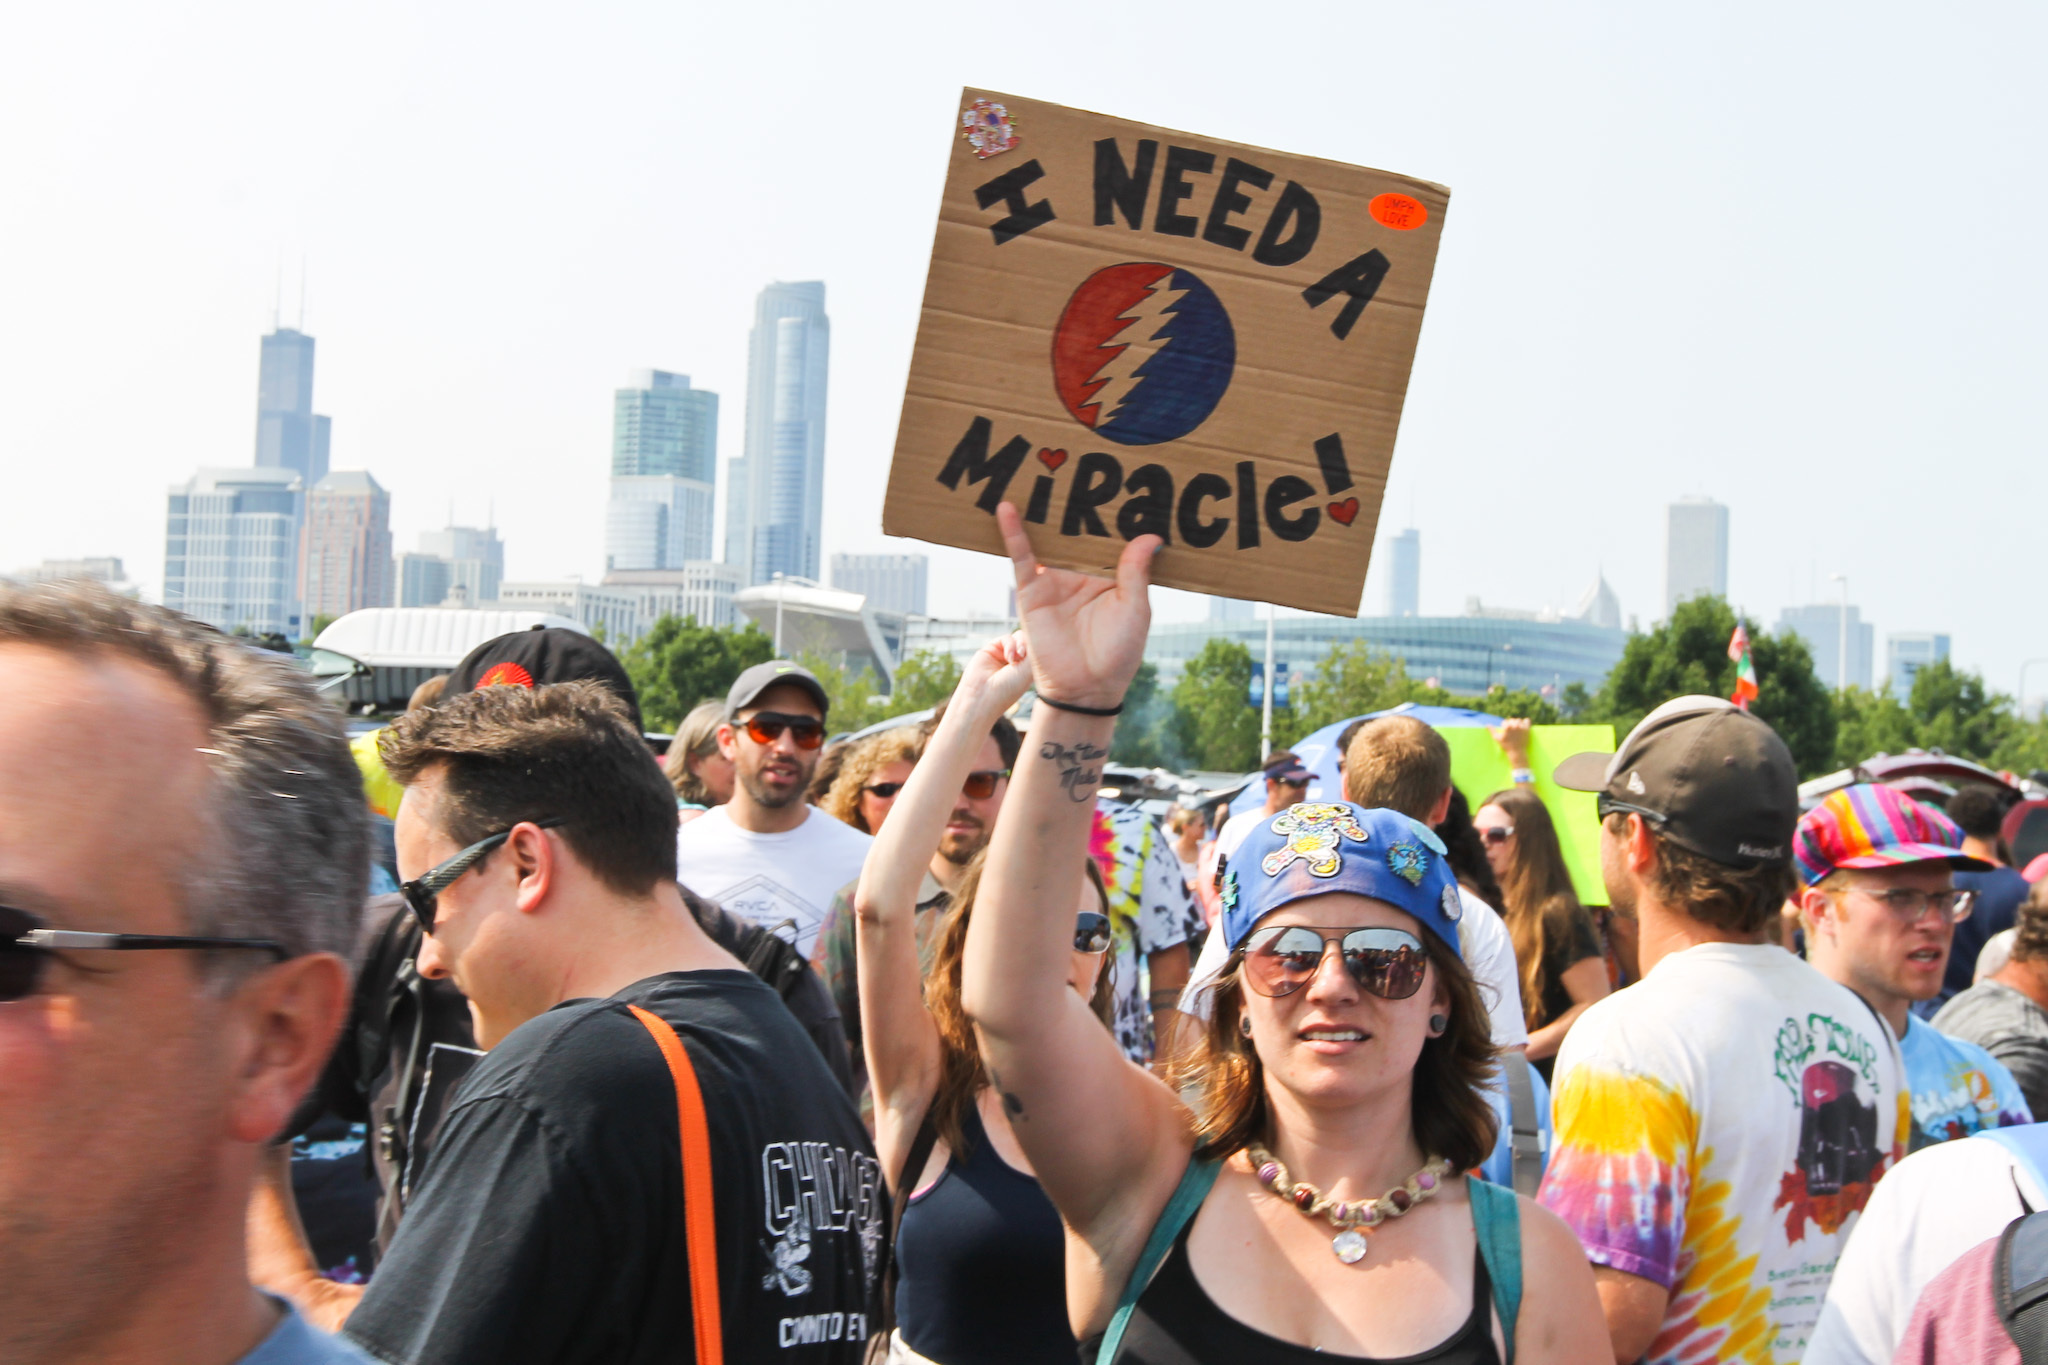 Photos: Grateful Dead fans at Soldier Field